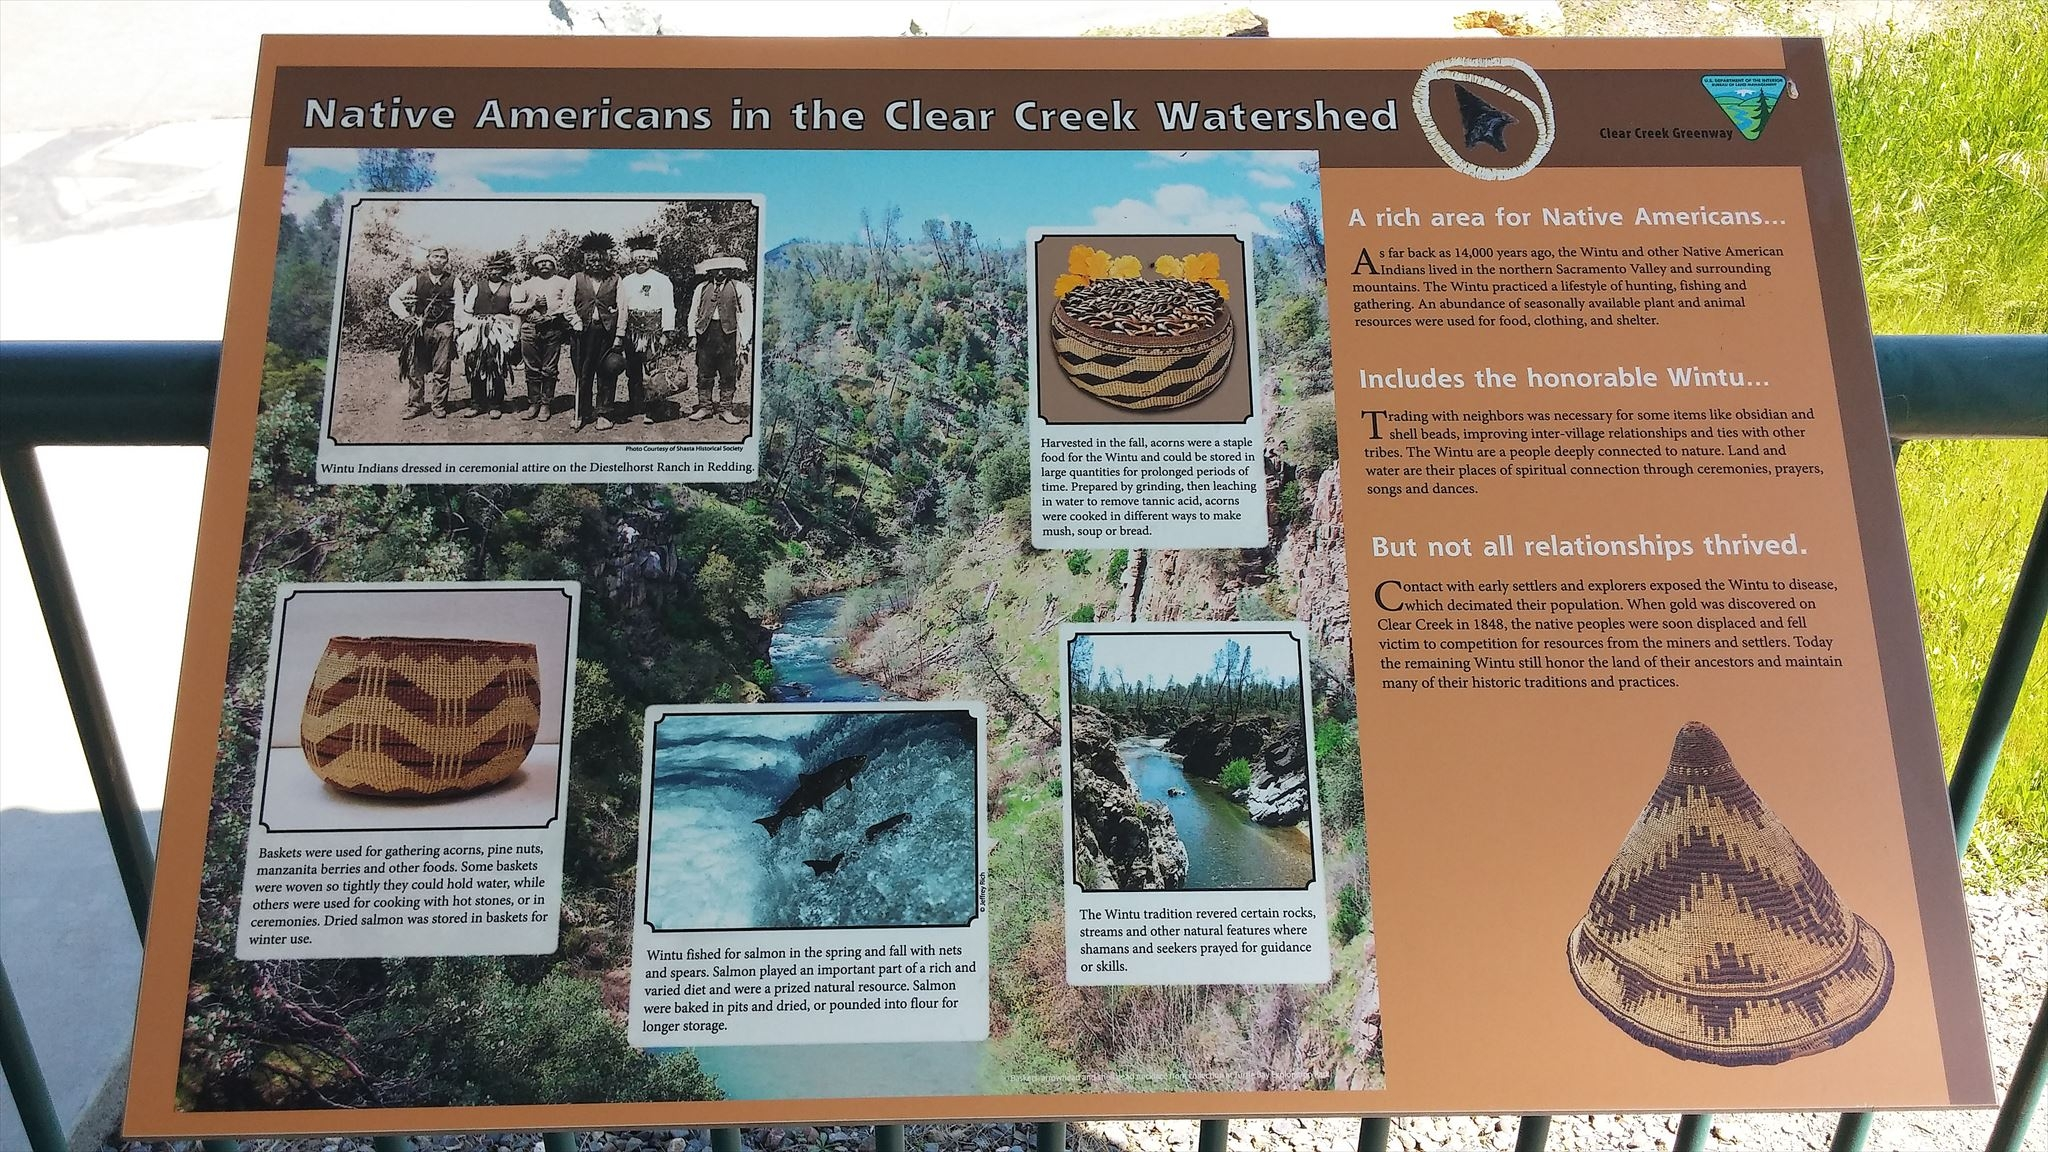 This historical marker provides information about the Native Americans who inhabited the watershed.